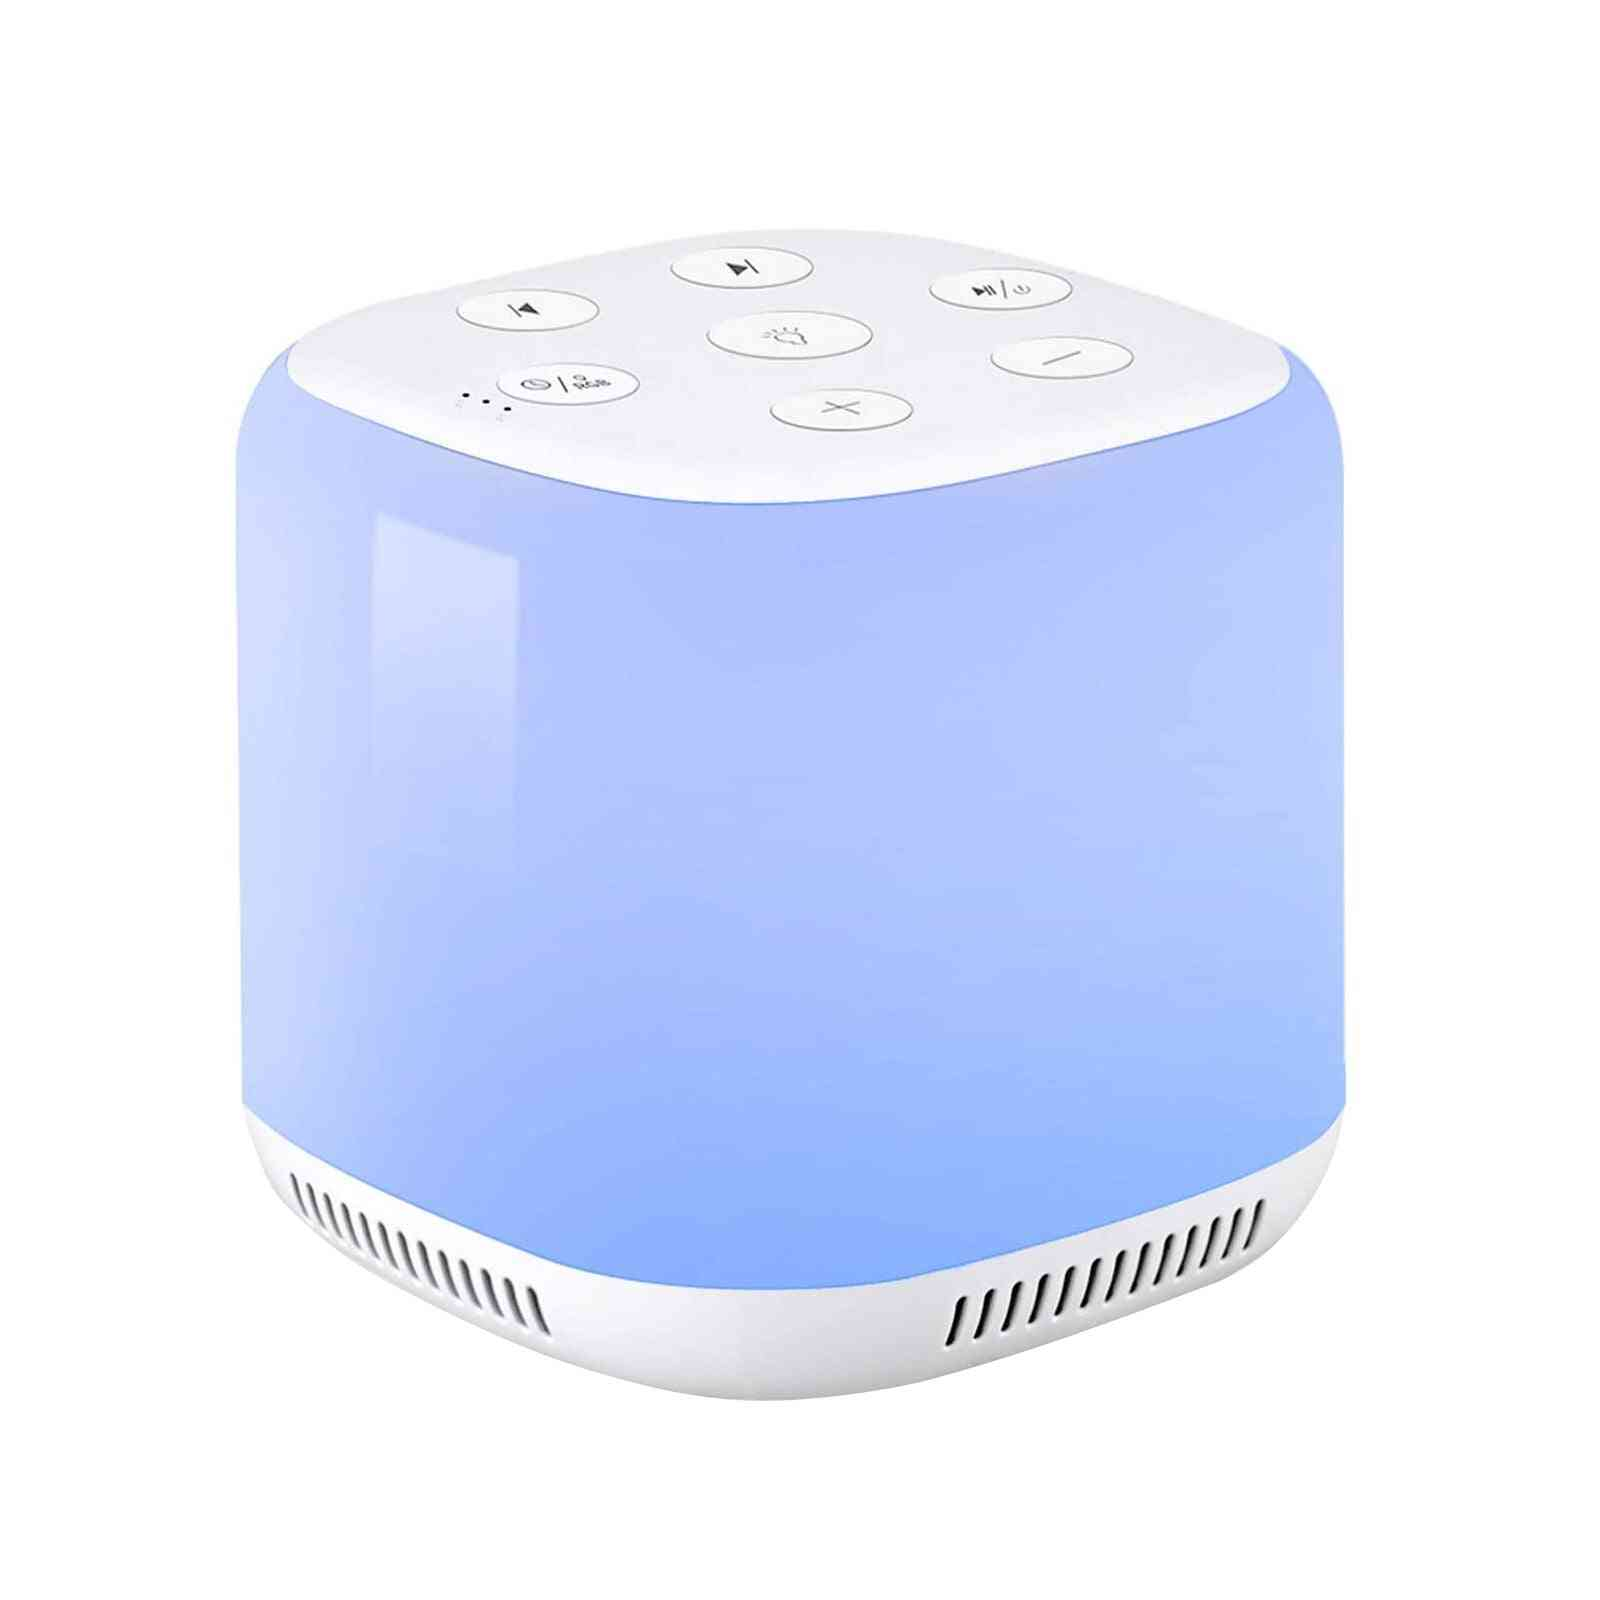 Usb Rechargeable Timed Shutdown Sleep Sound Machine For Relaxation